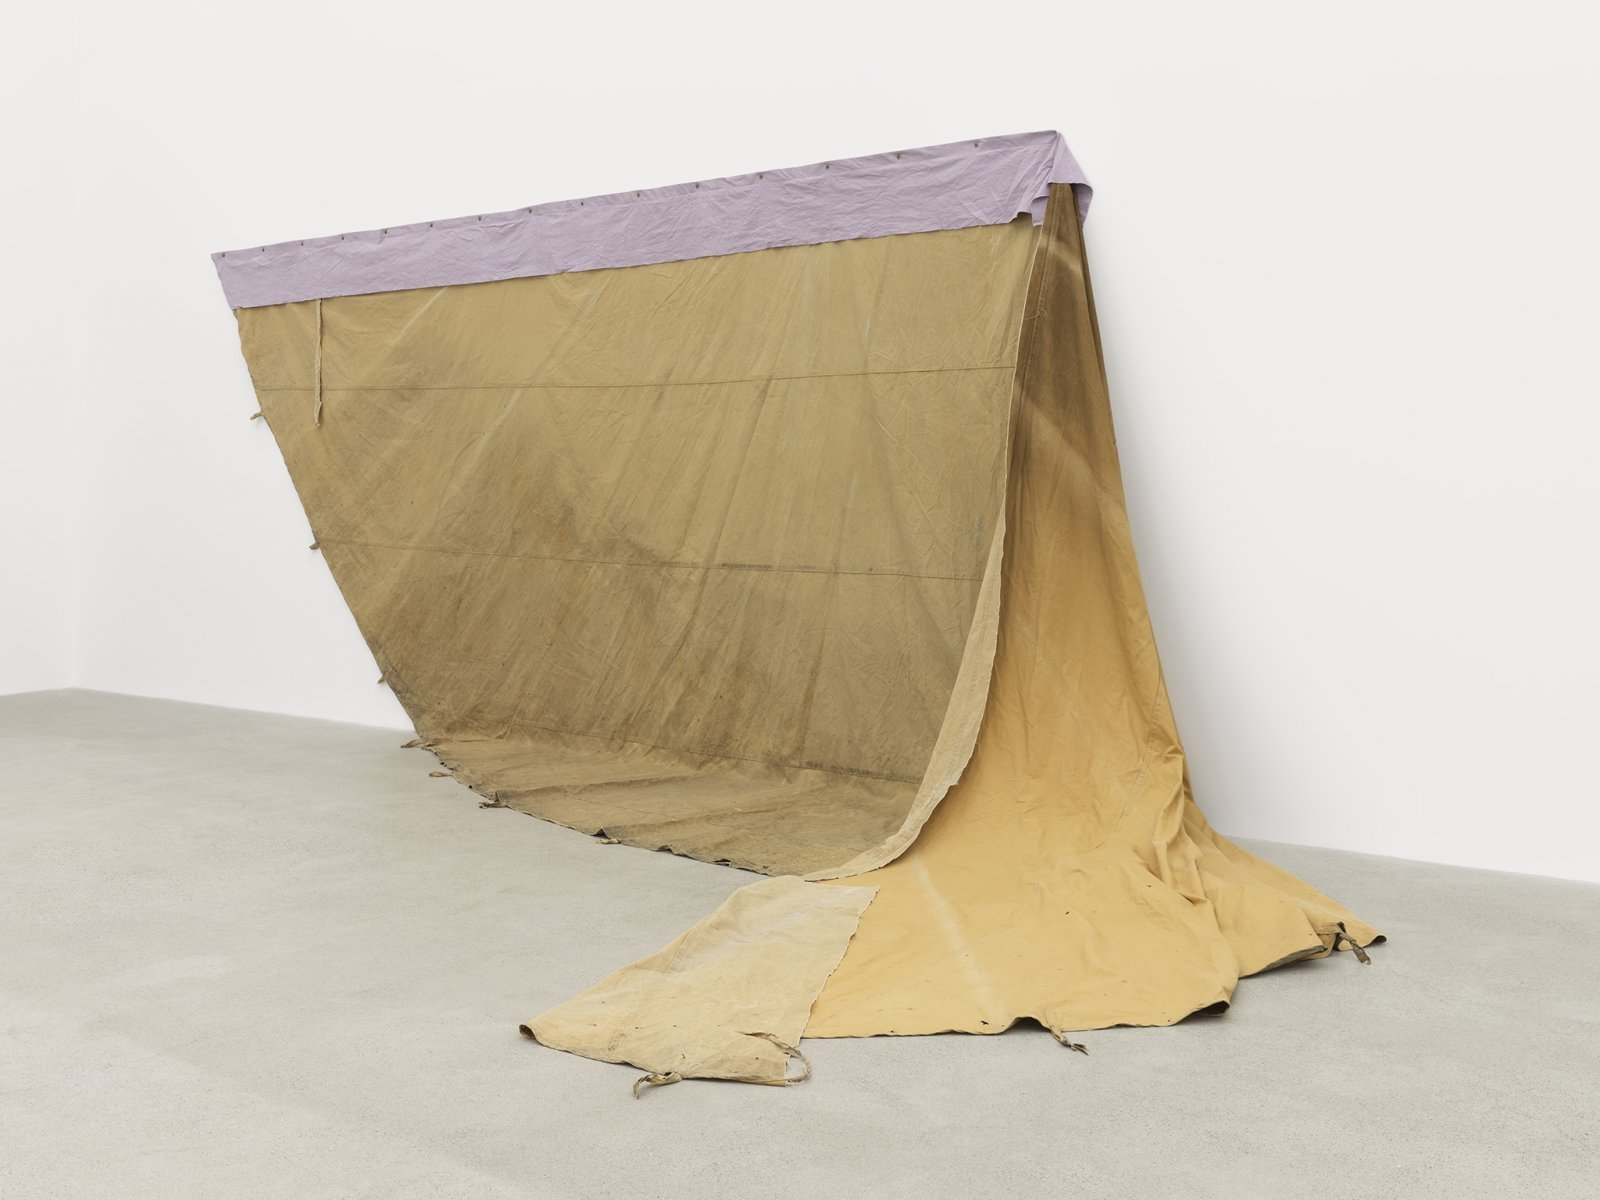 Duane Linklater, a gift from Doreen, 2016–2019, hand-dyed canvas, teepee canvas, blueberry extract, grommets, nails, 108 x 270 x 123 in. (274 x 686 x 312 cm)